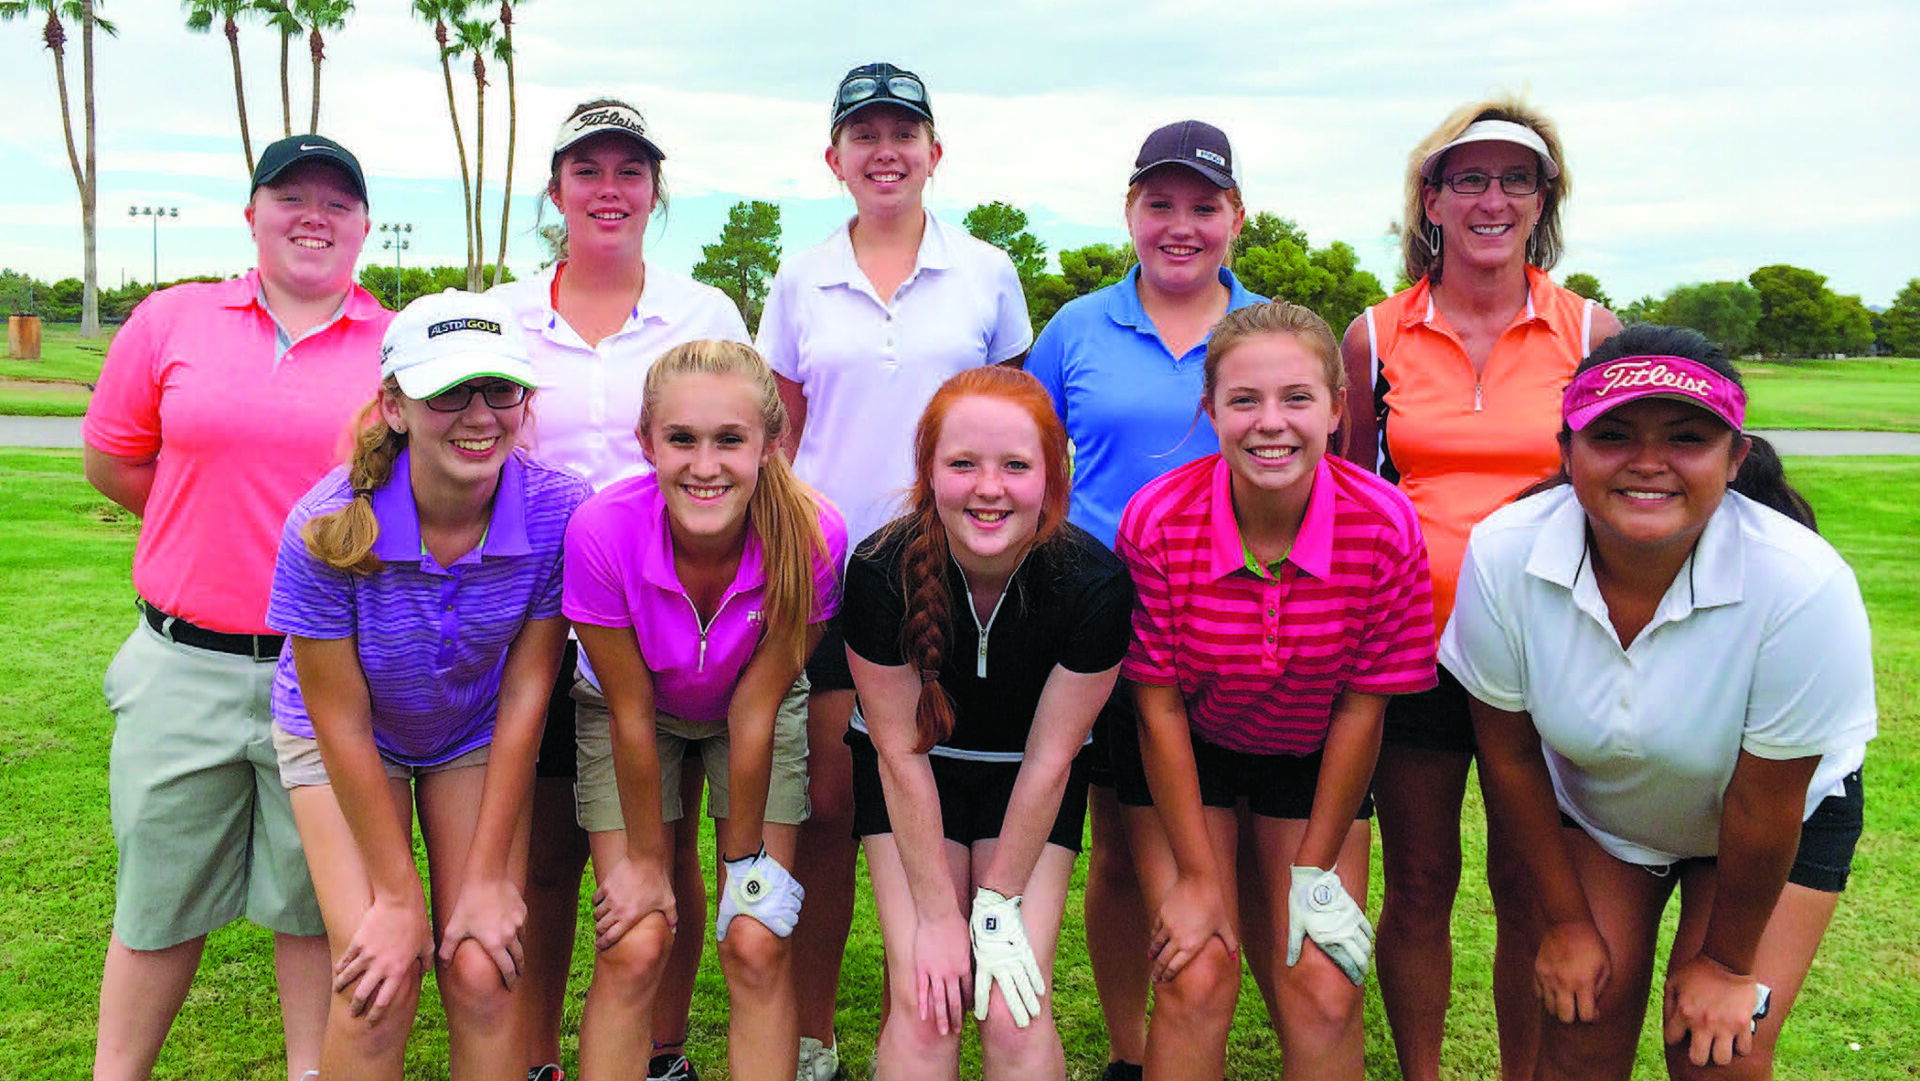 Sports: Two returnees raise hopes for Lady Aztec golf team